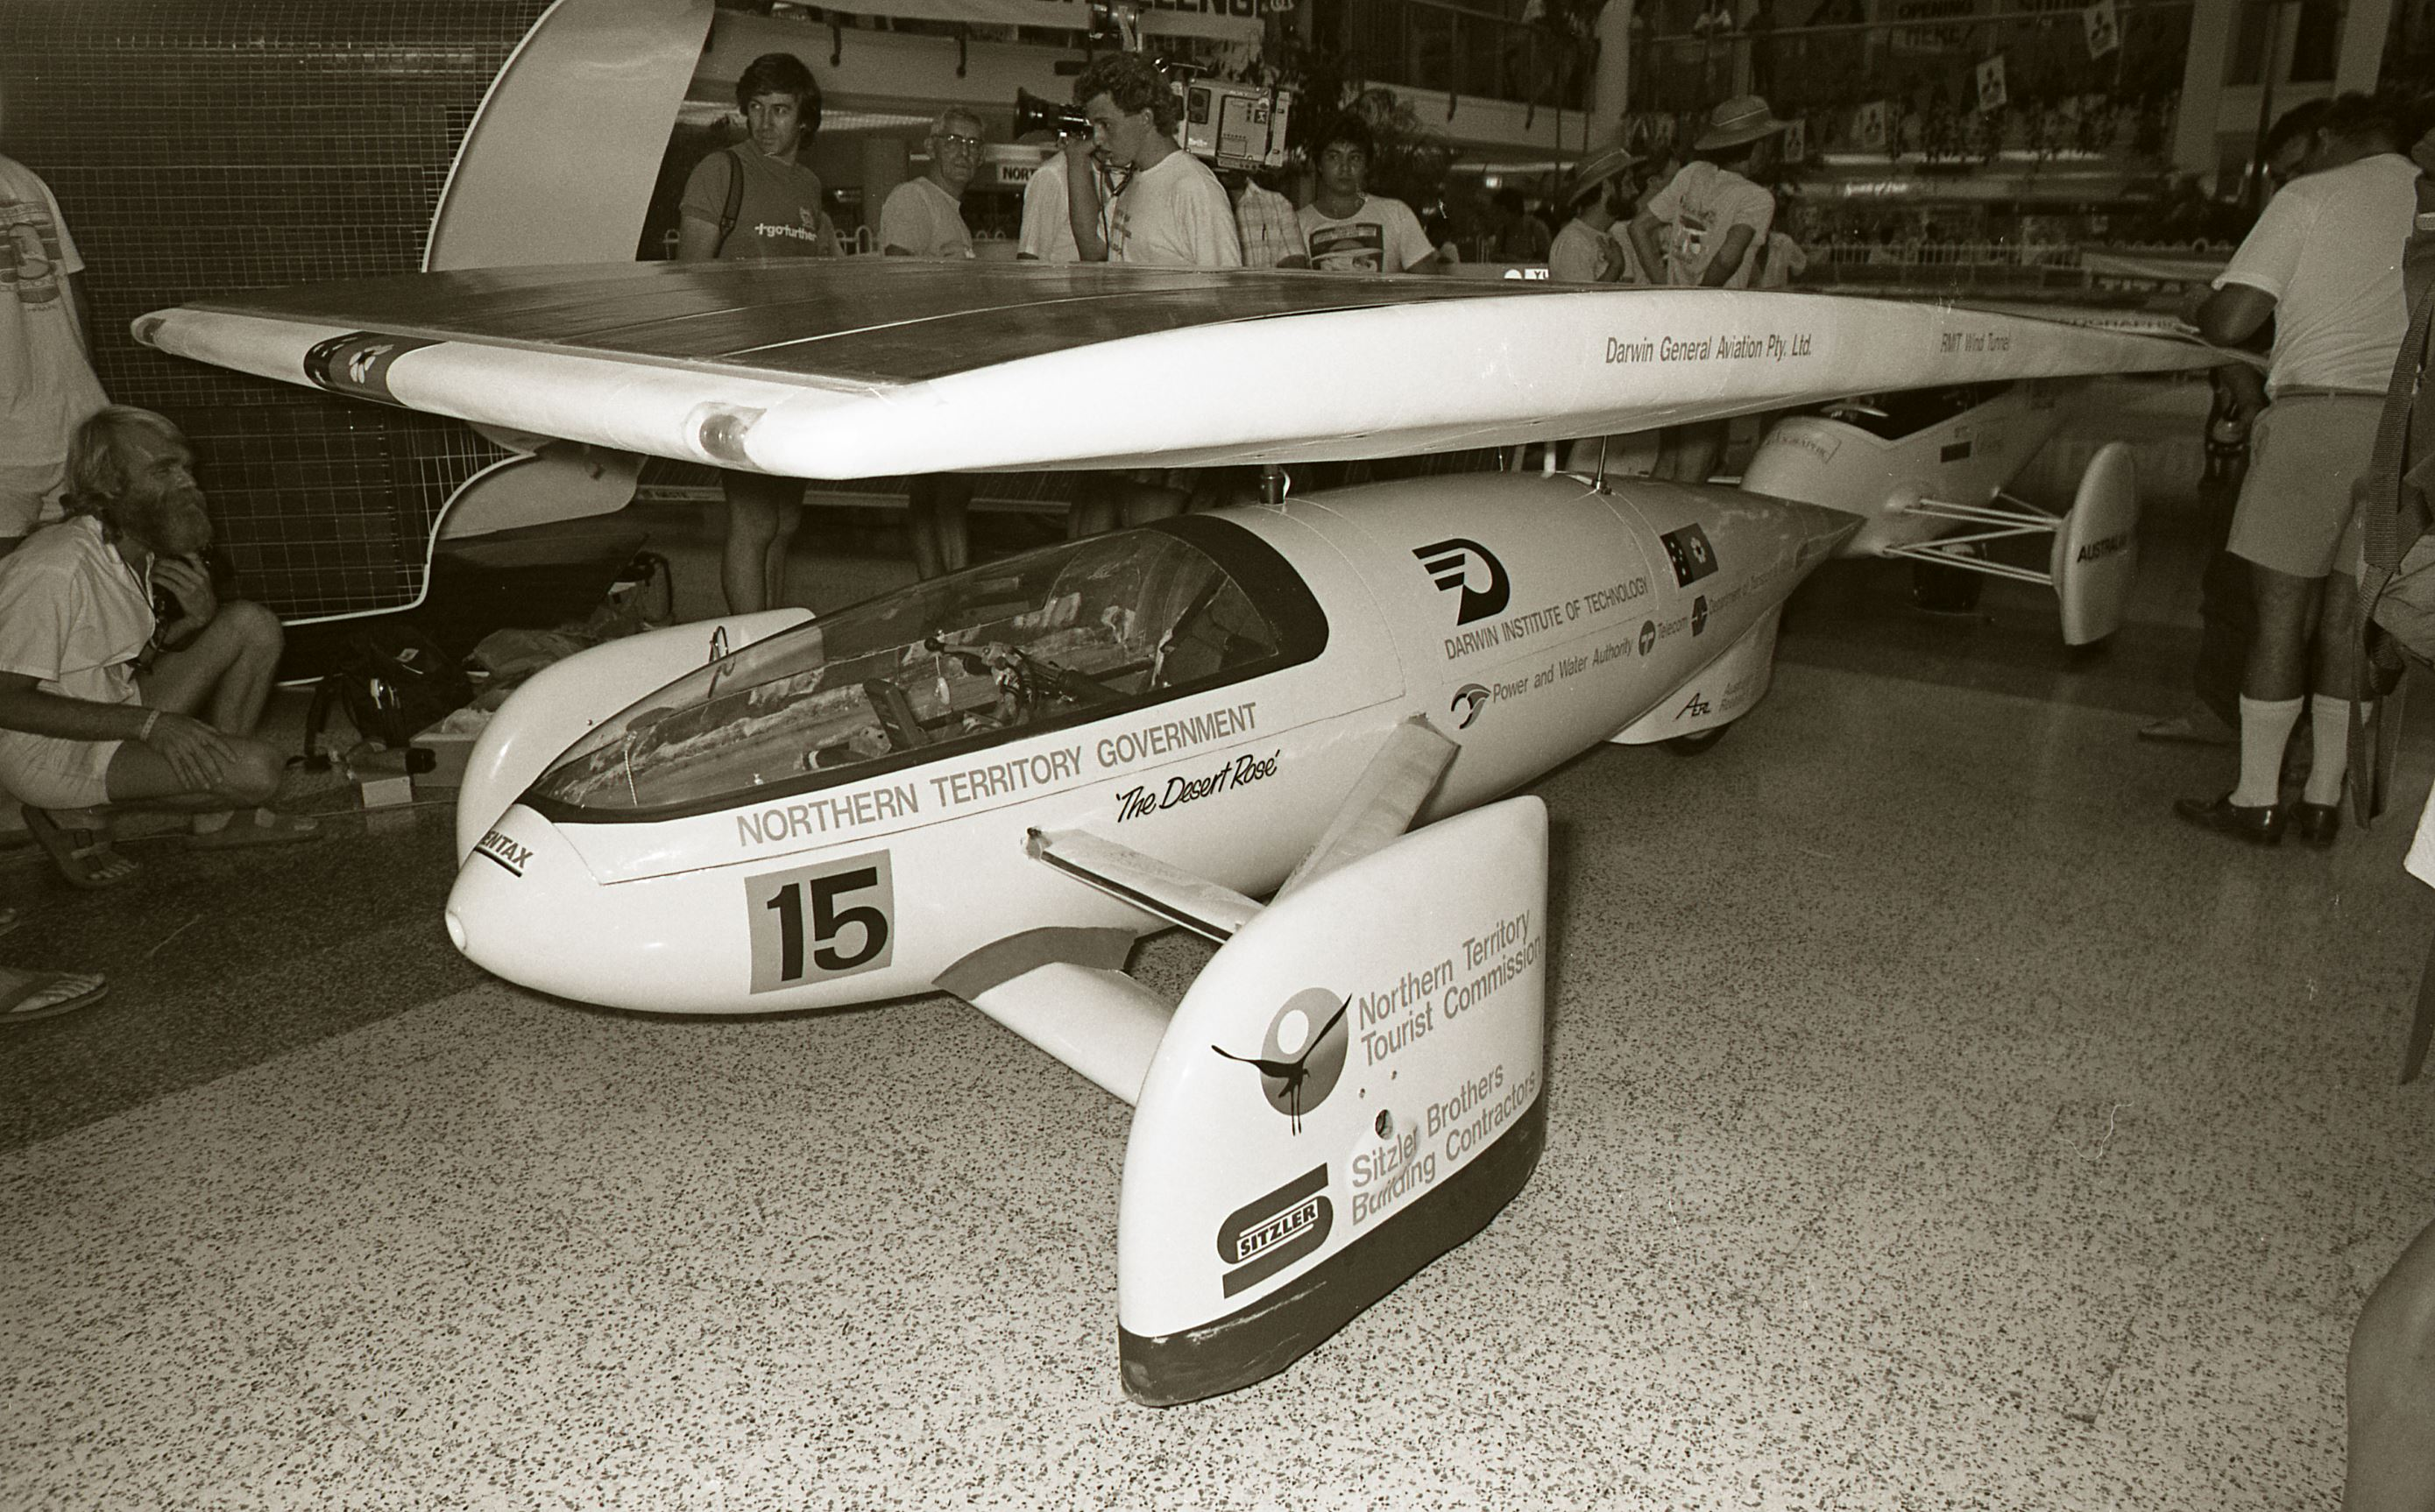 [Solar Cars on display at Casuarina Square, 30 October 1987] <br />Image courtesy of Northern Territory Archives Service, Department of Chief Minister, NTRS 3823, Item BW2685, 30.